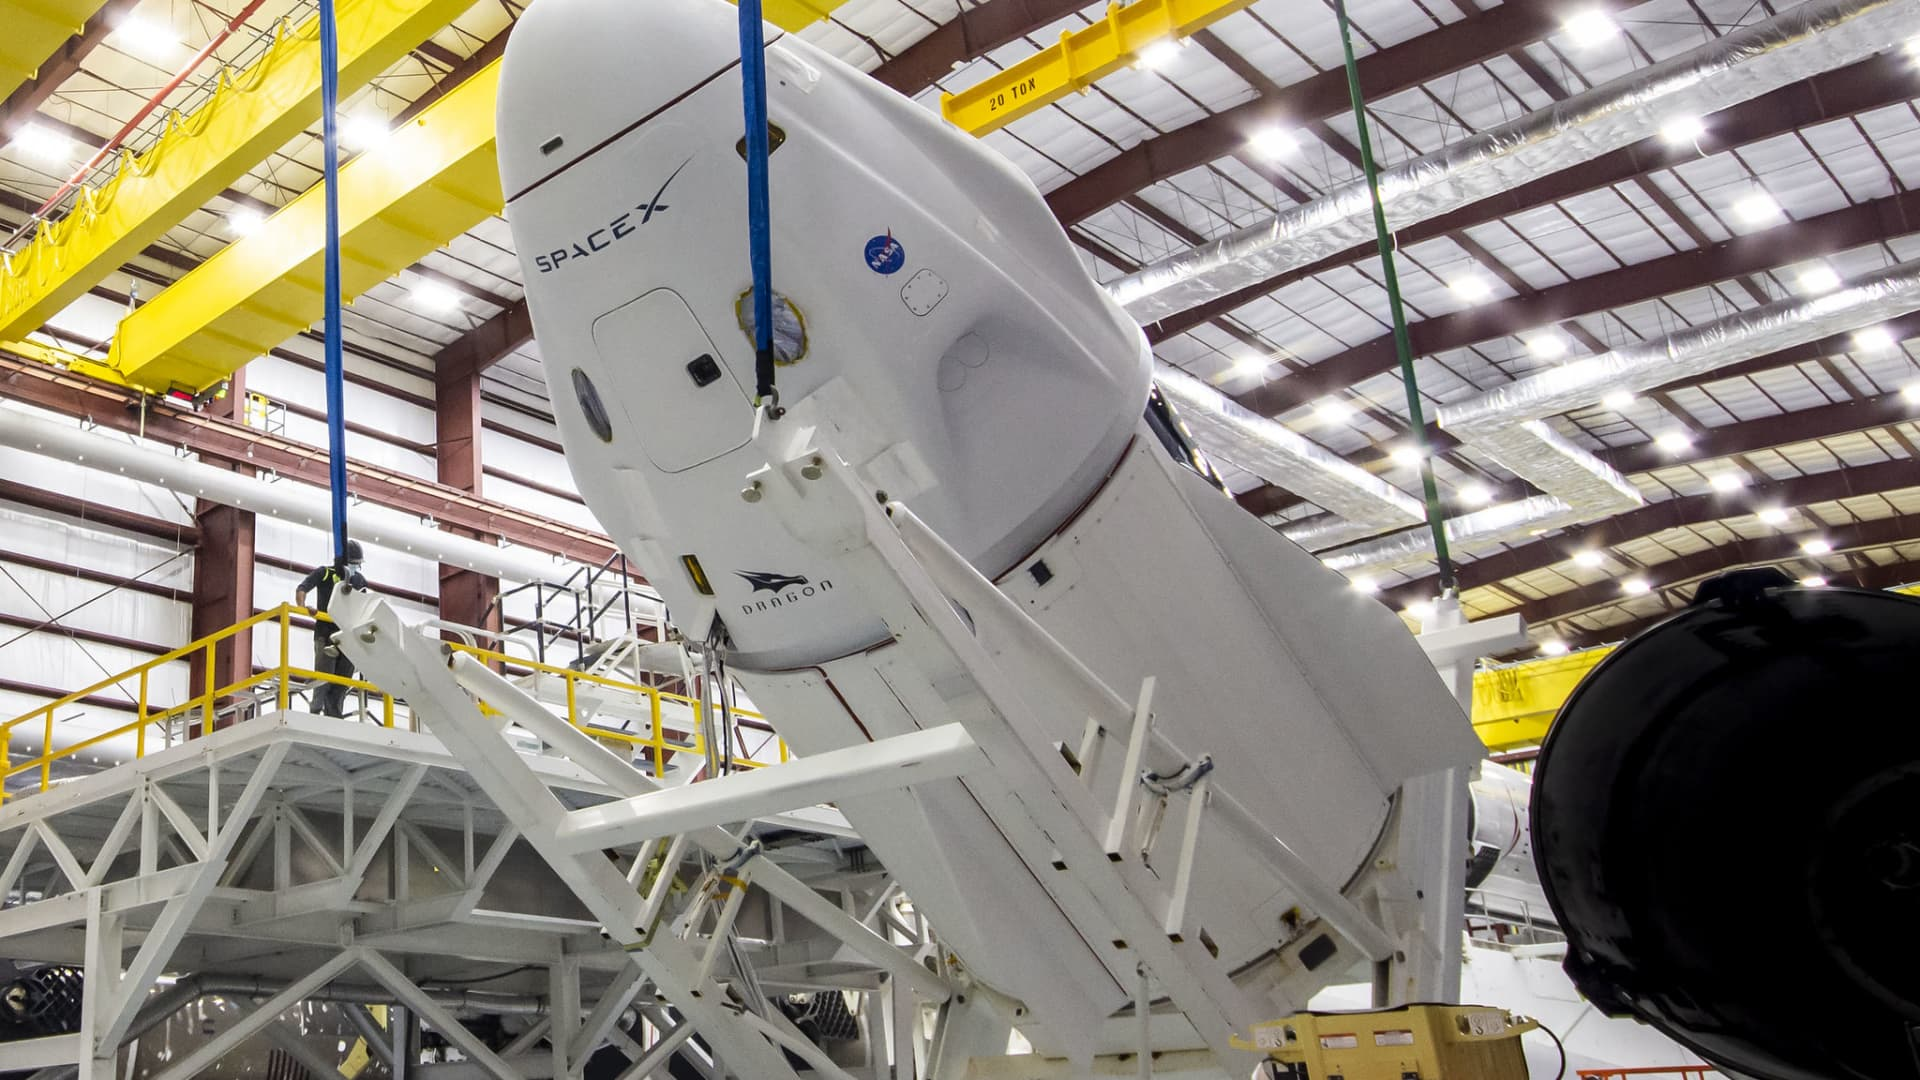 SpaceX's Crew Dragon, named Endeavour, is lifted and mated to the SpaceX Falcon 9 rocket at NASA Kennedy Space Center's Launch Complex 39A beginning April 13, 2021.